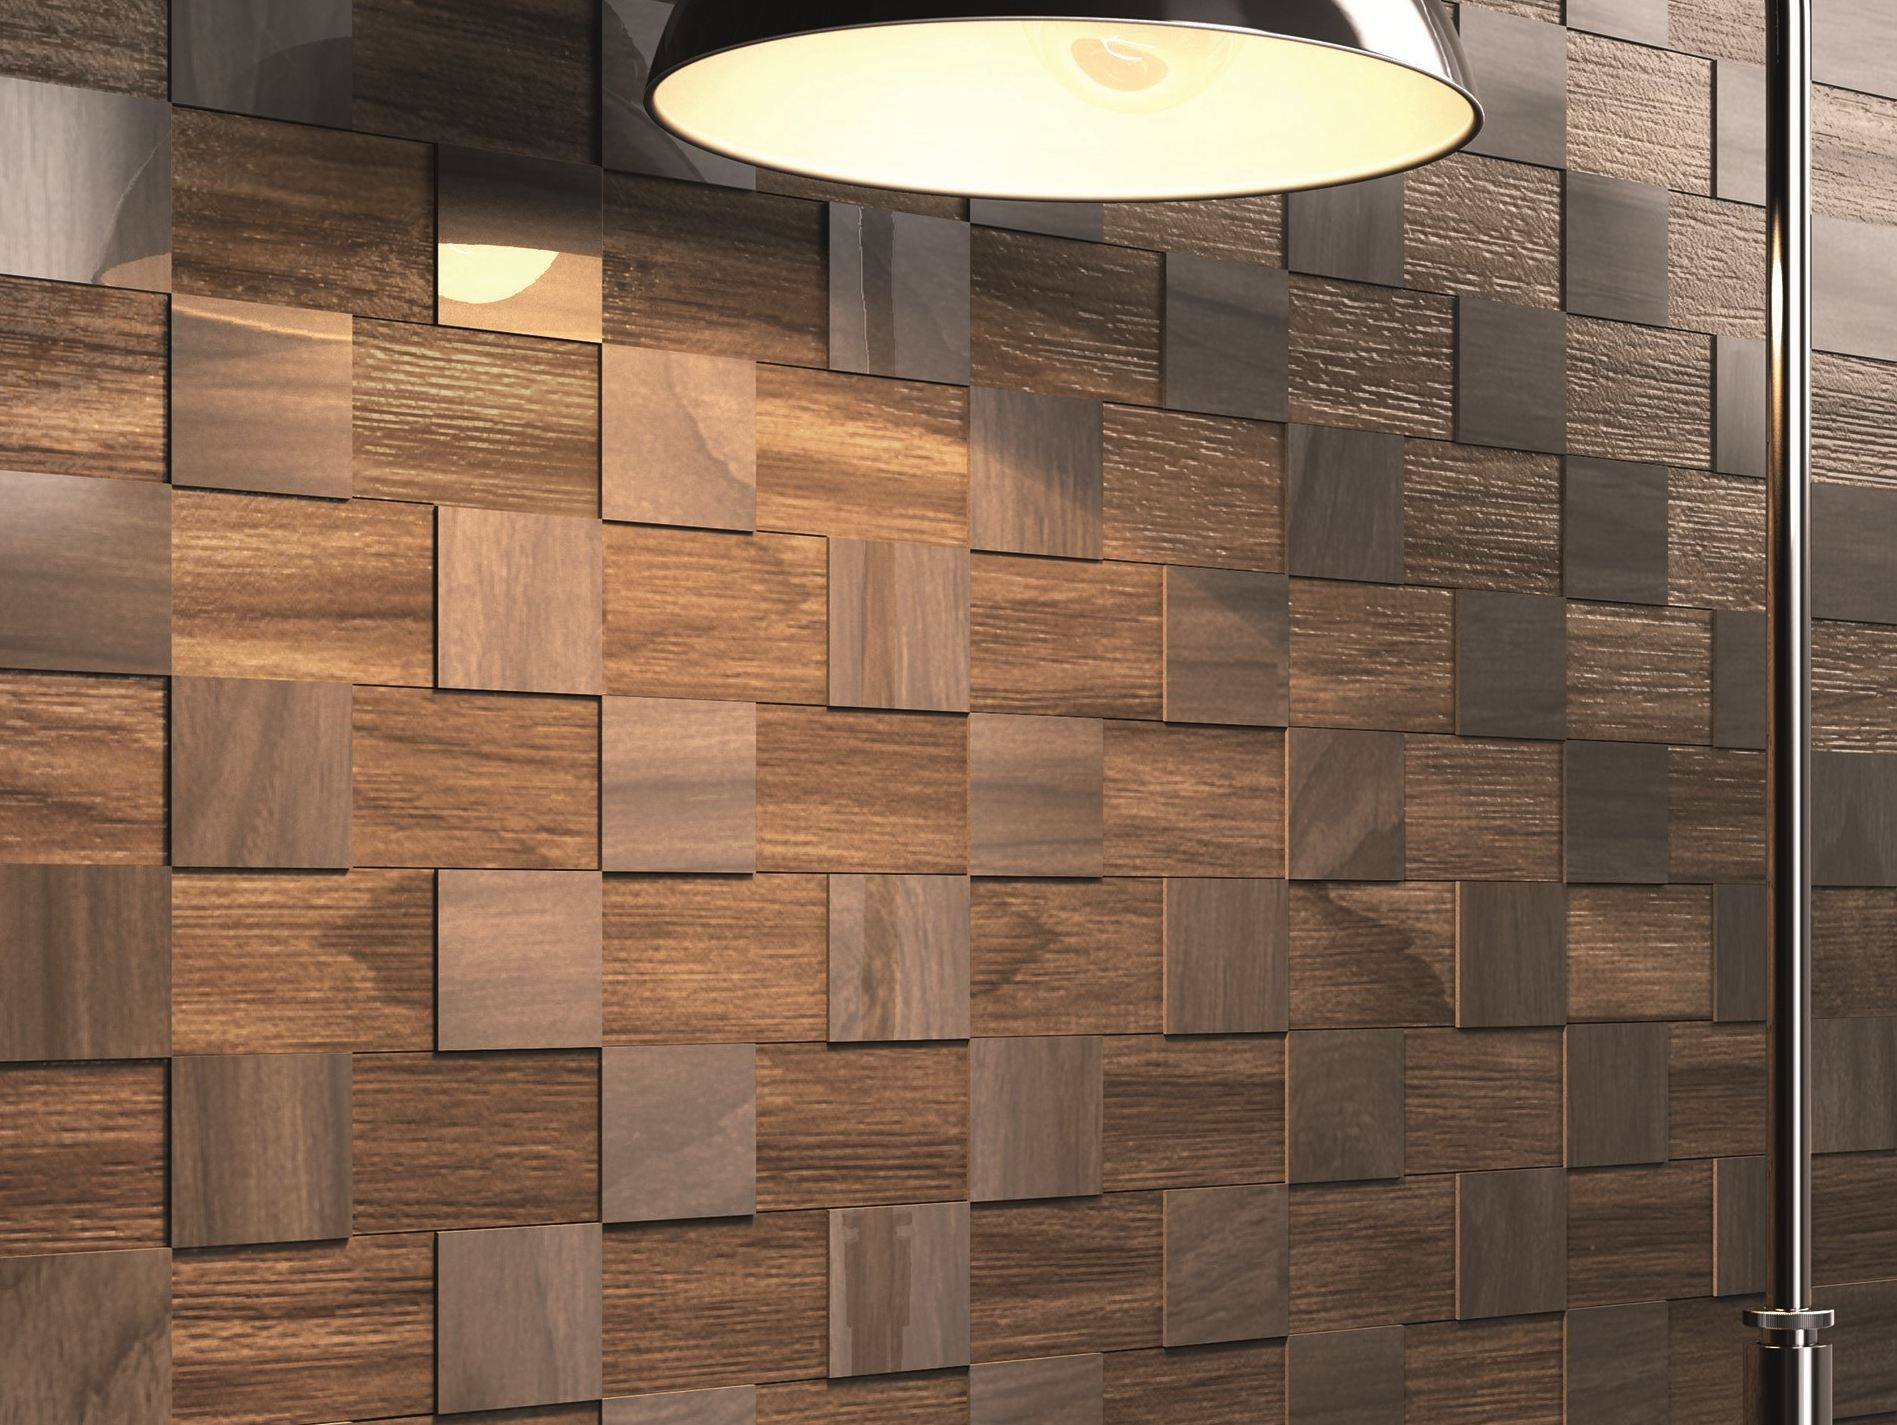 Artwork of Wood Wall Covering Ideas | Wall Coverings ...